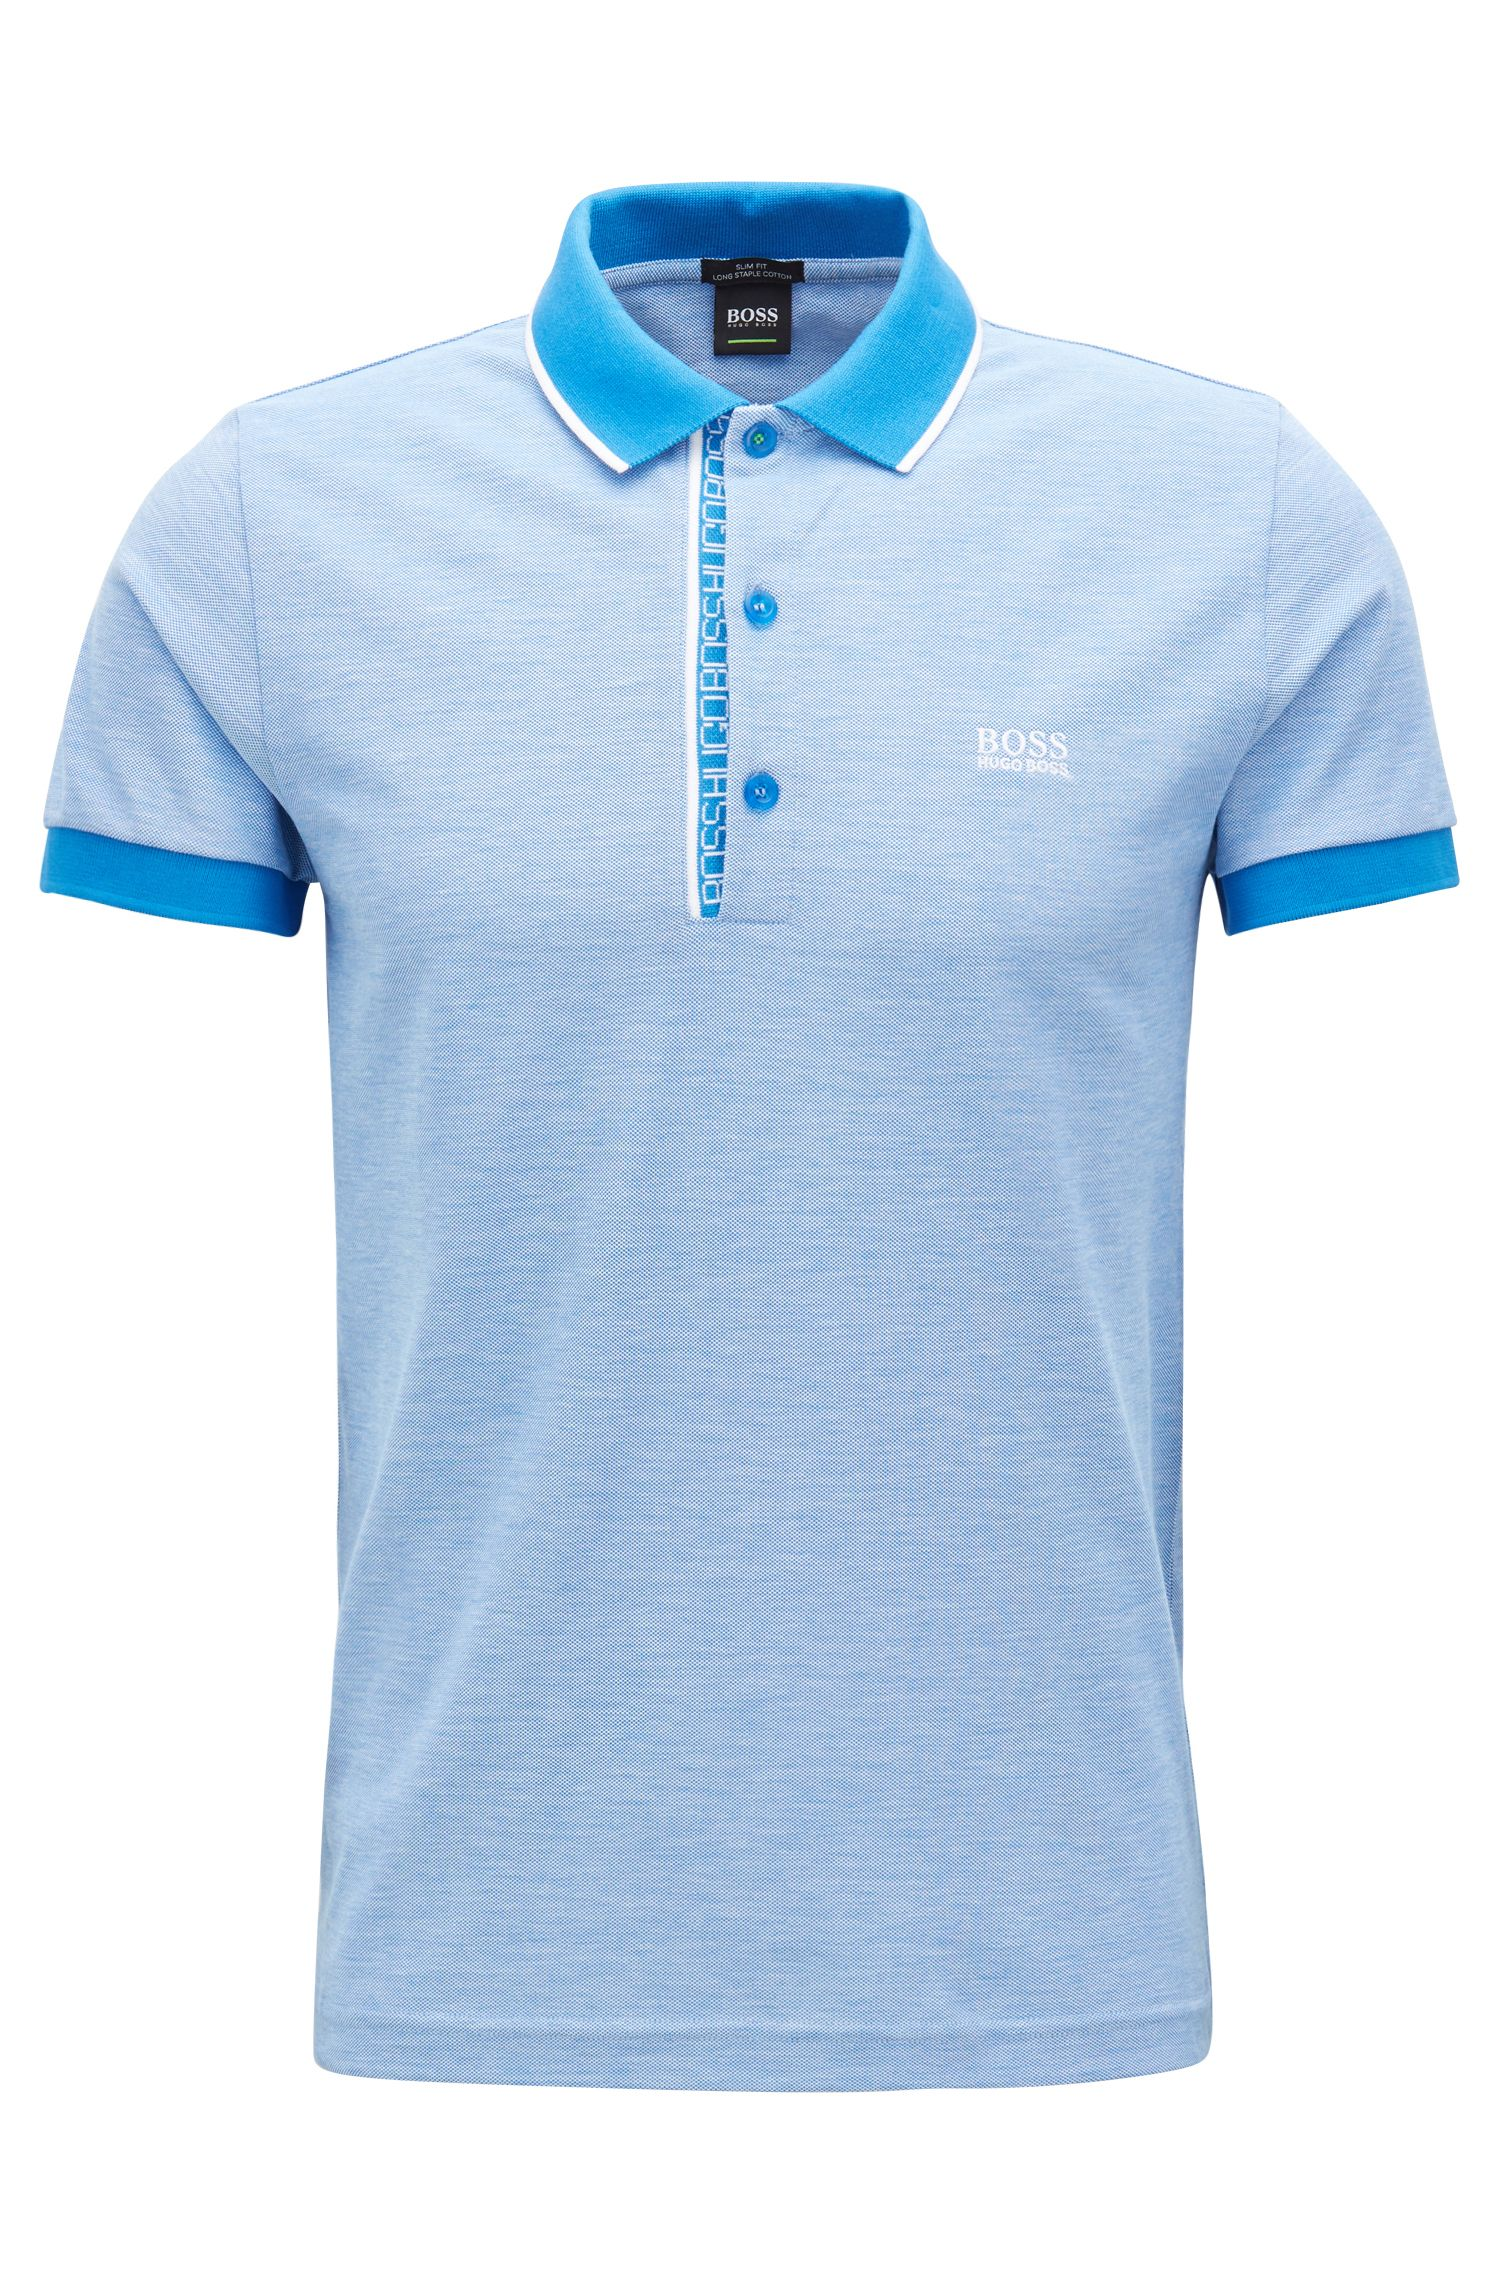 Slim-fit logo polo shirt in cotton piqué